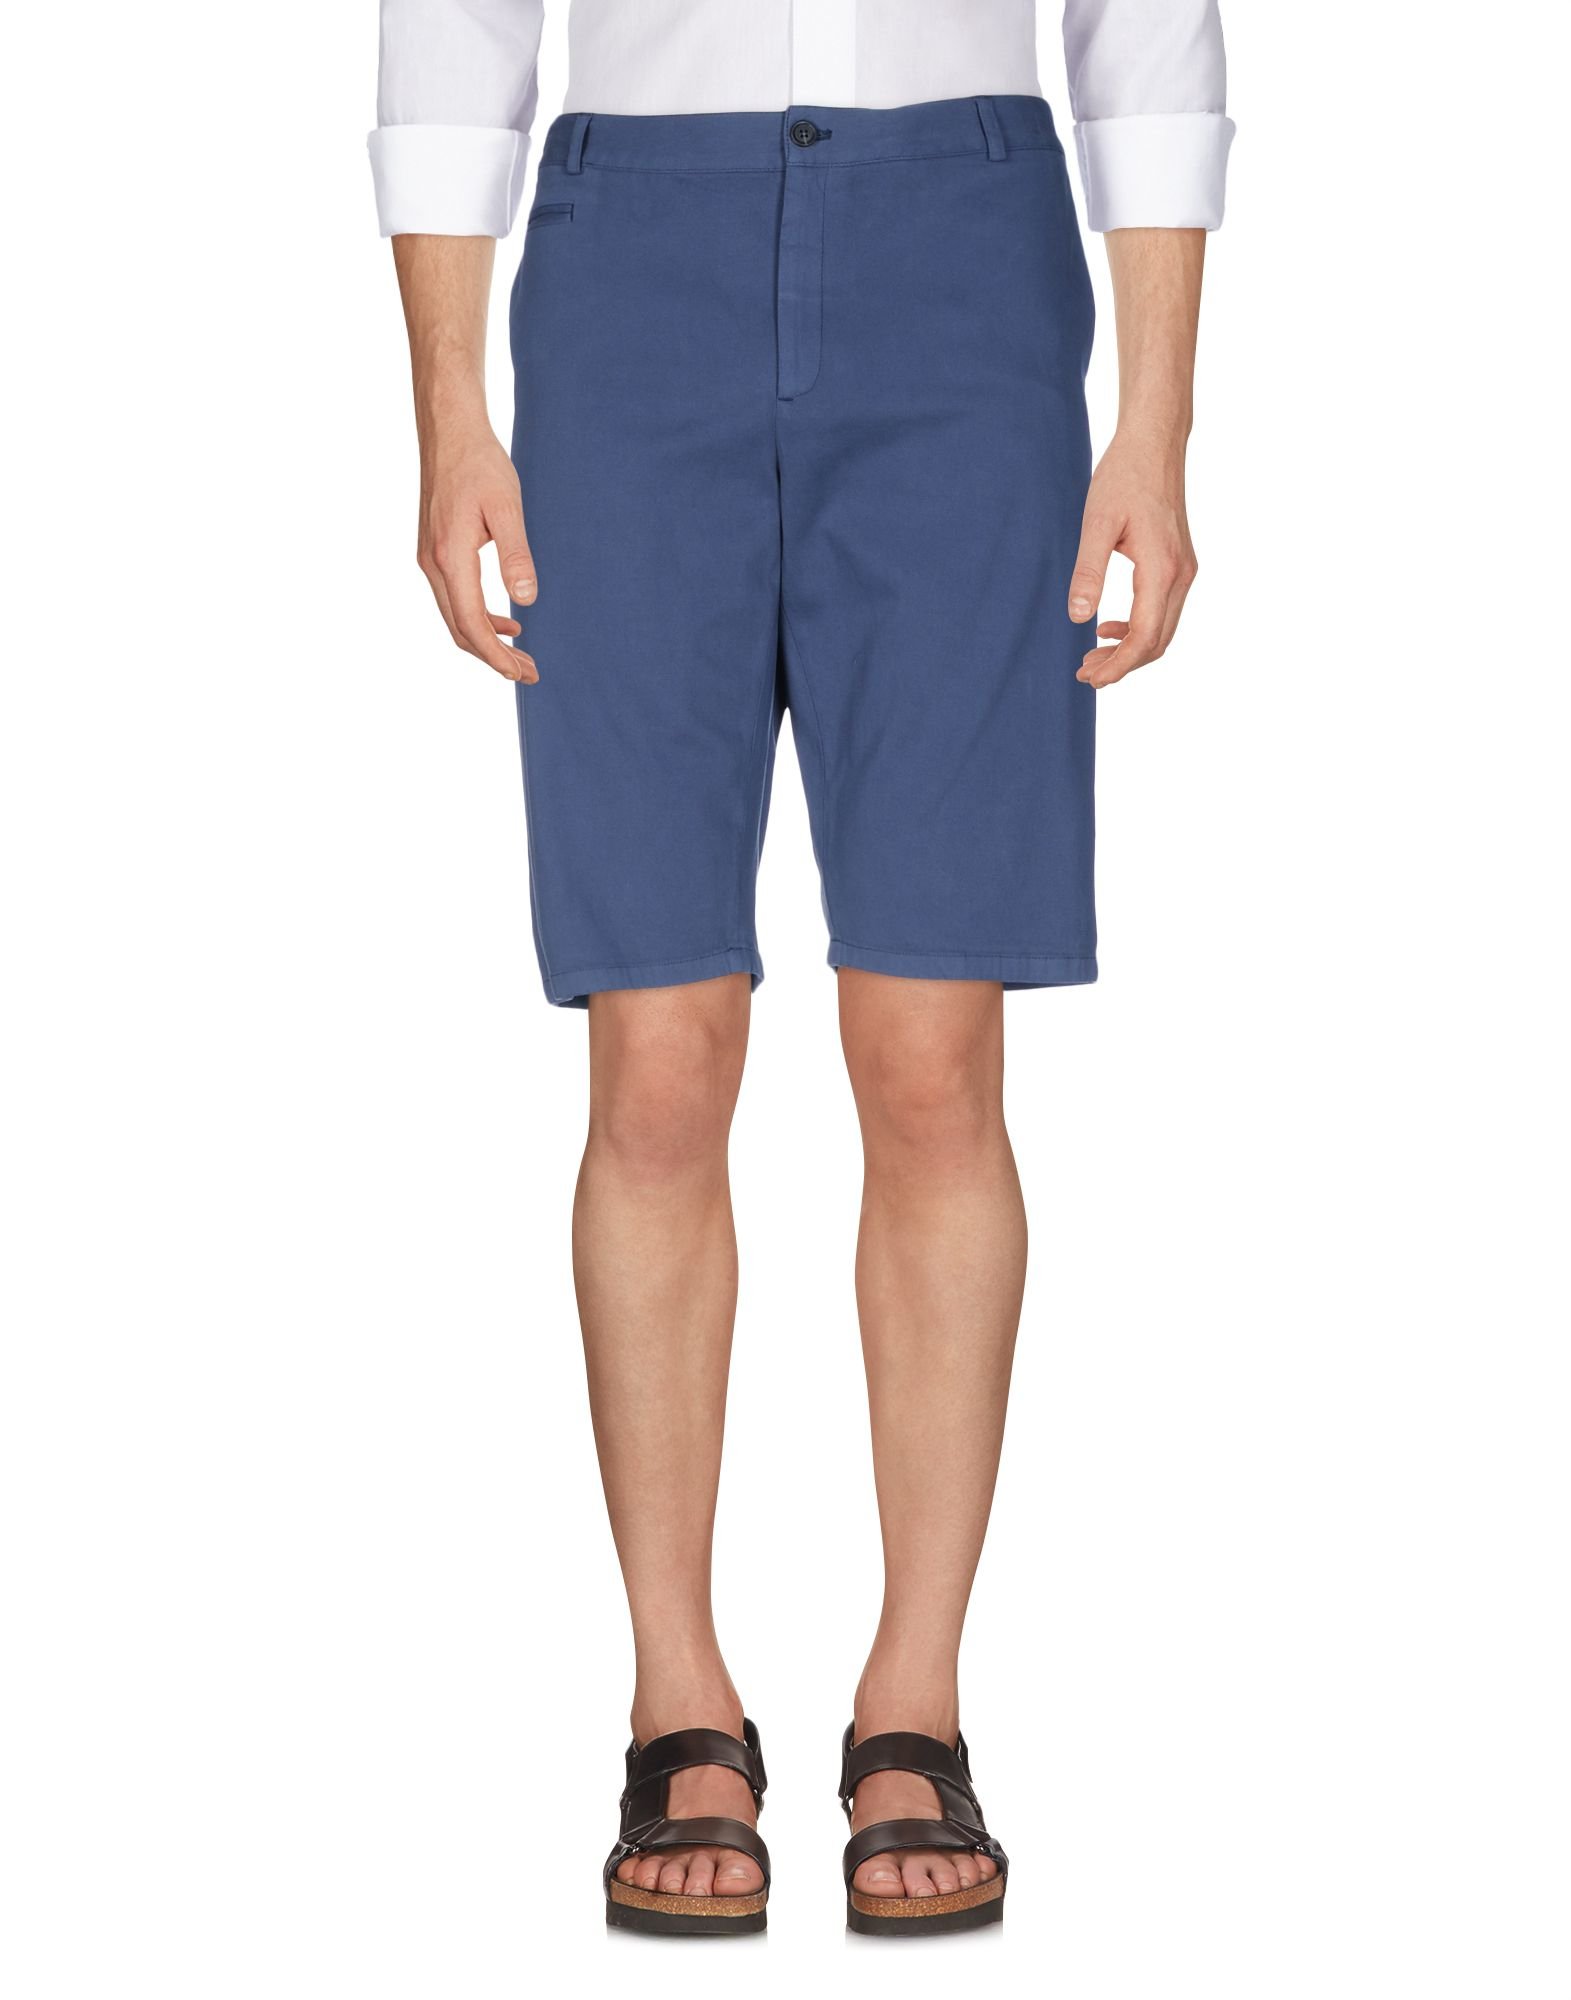 Shorts & & Shorts Bermuda Paul & Joe Uomo - 13081616GD 4501c9